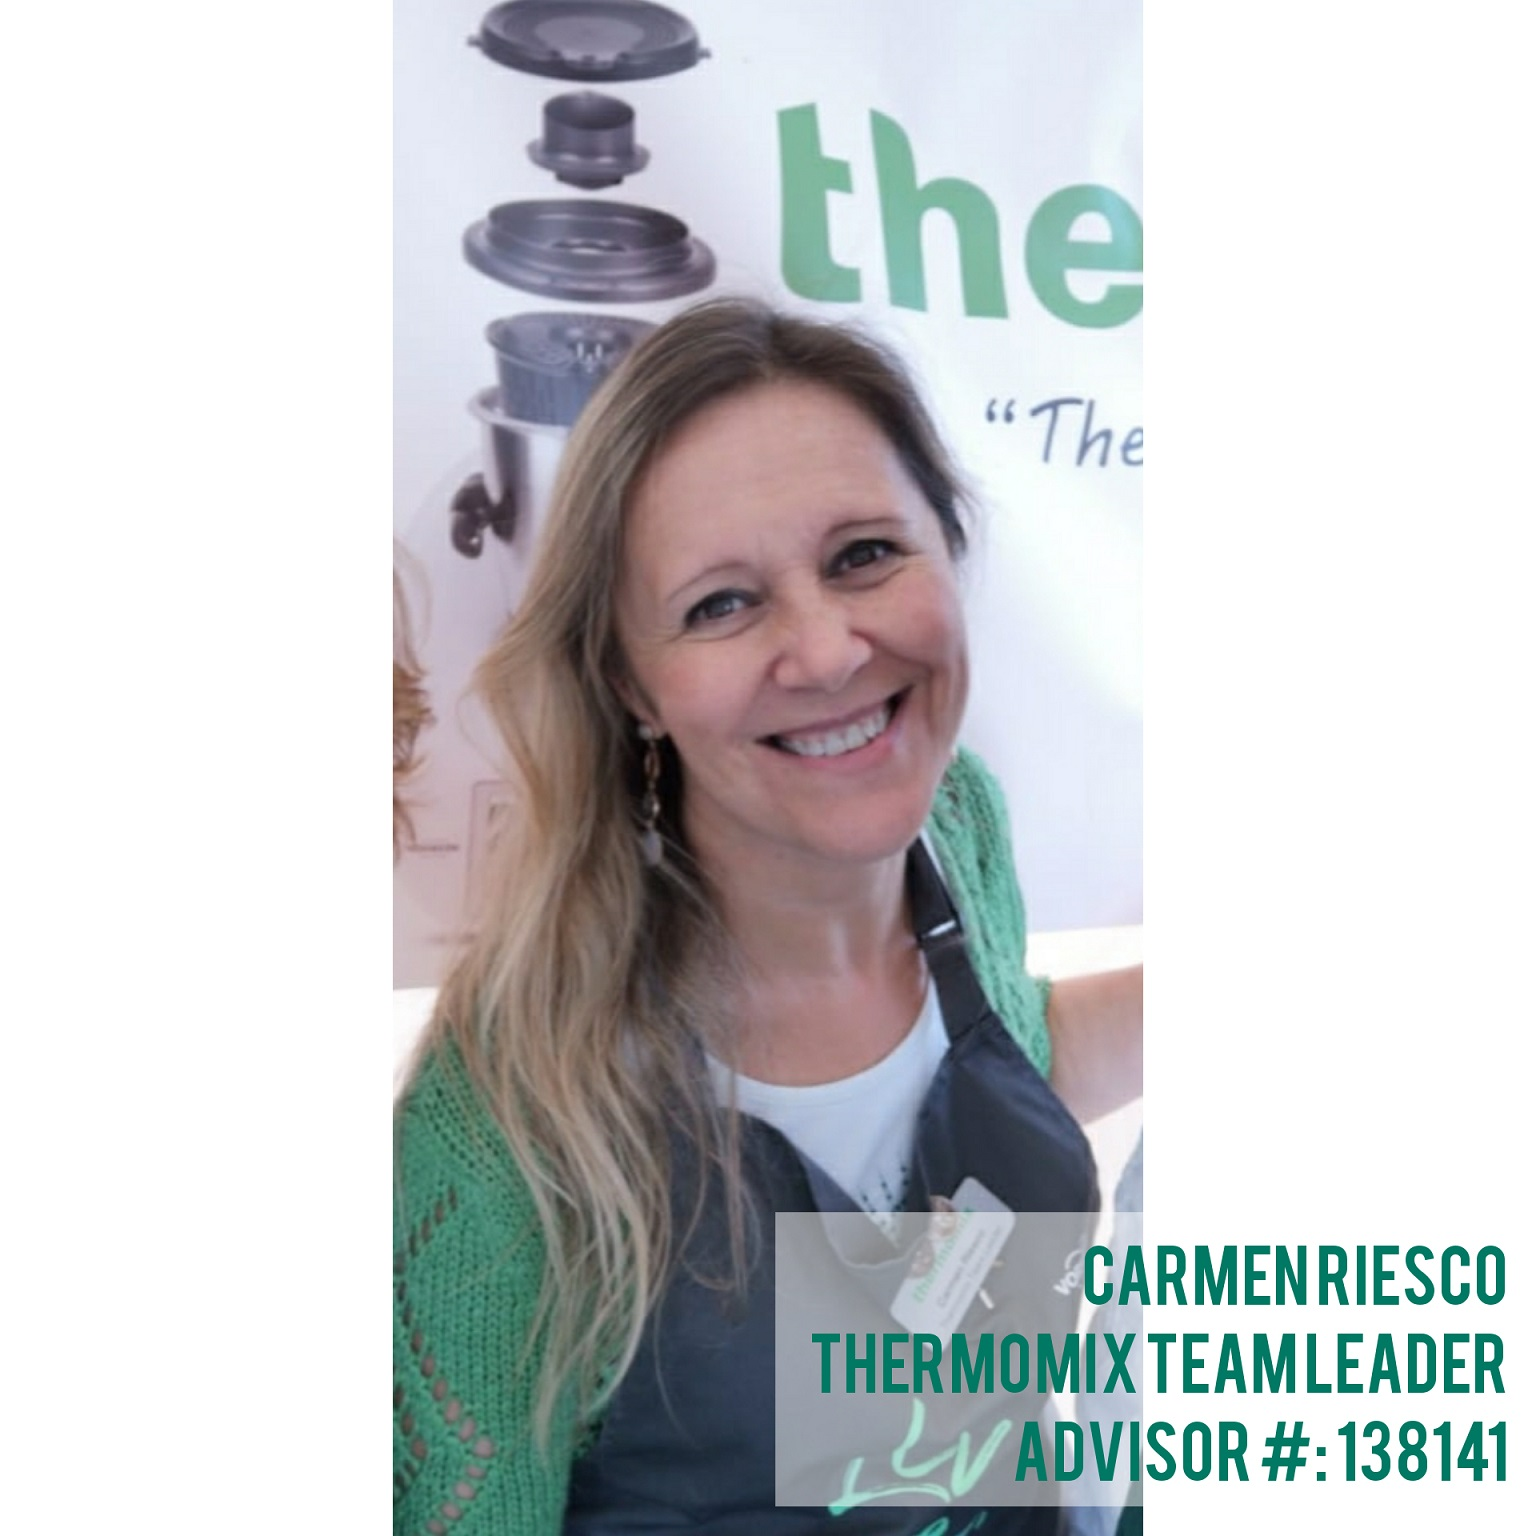 Thermomix's main image